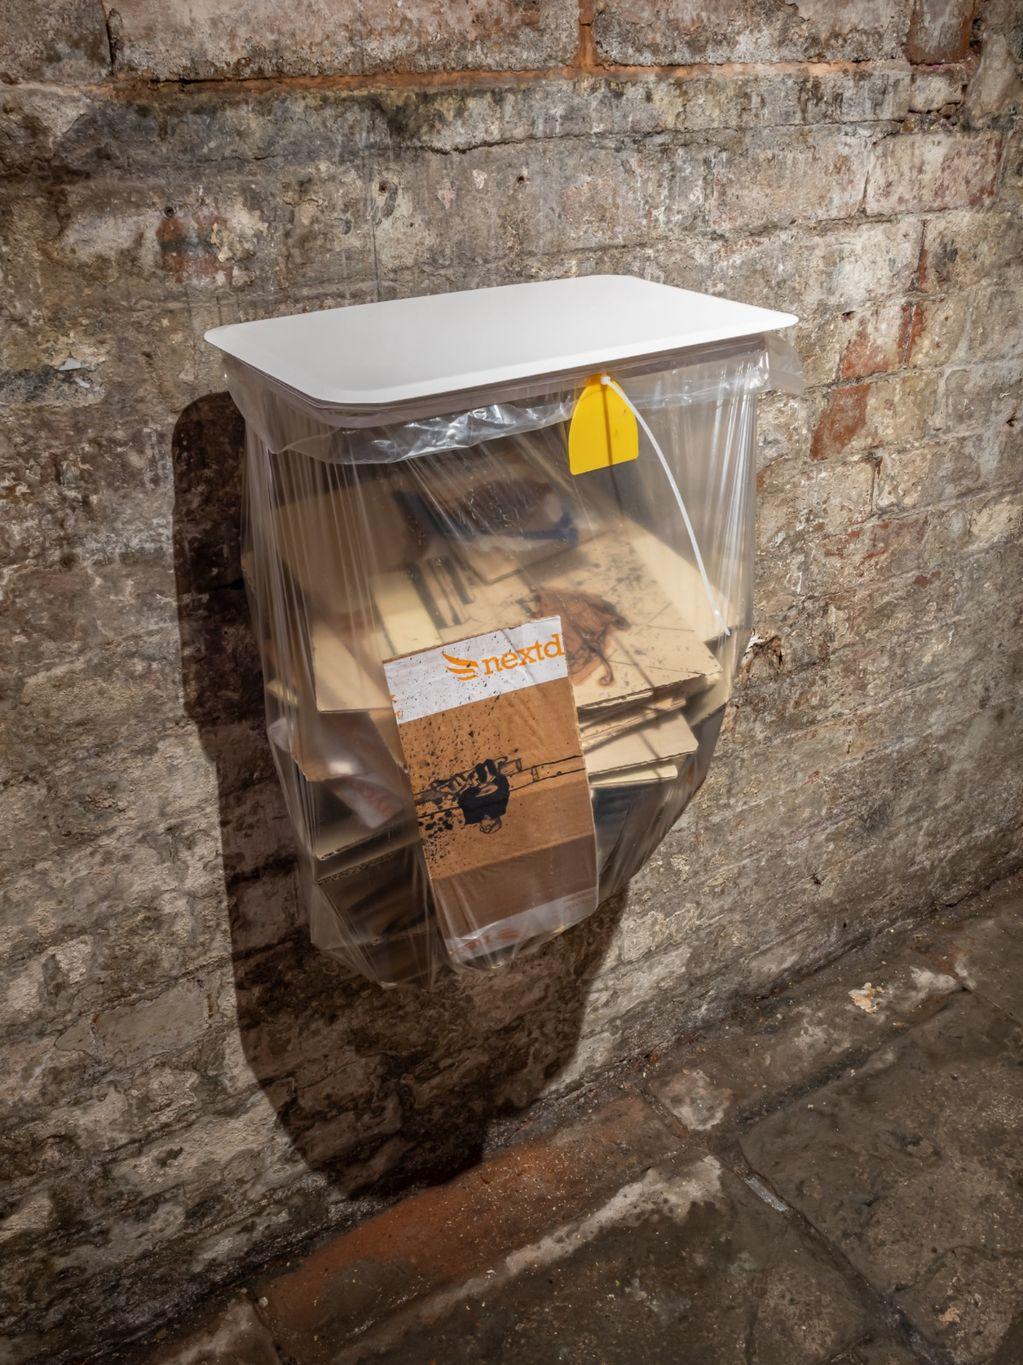 A Bin With Drawings of Rough Sleepers 2019